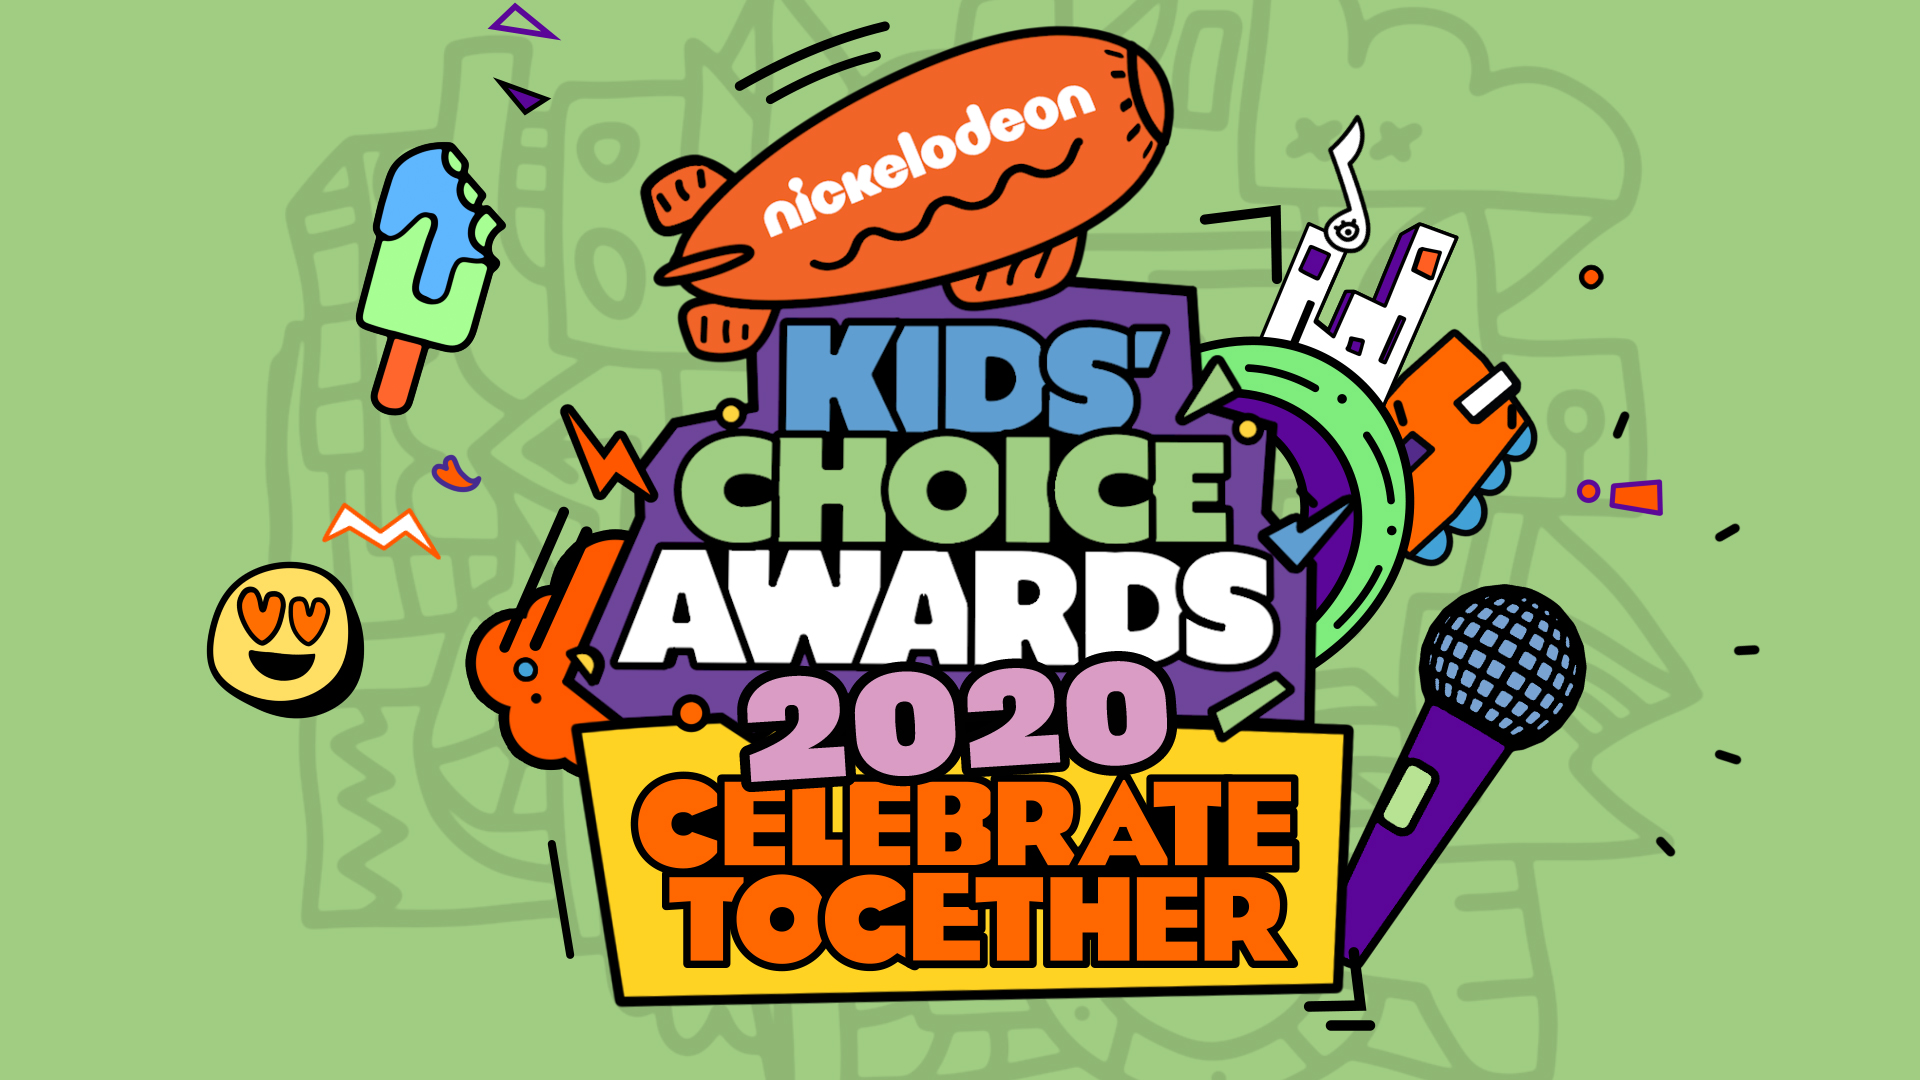 Gli Avengers si sono riuniti ai Kids' Choice Awards 2020 thumbnail